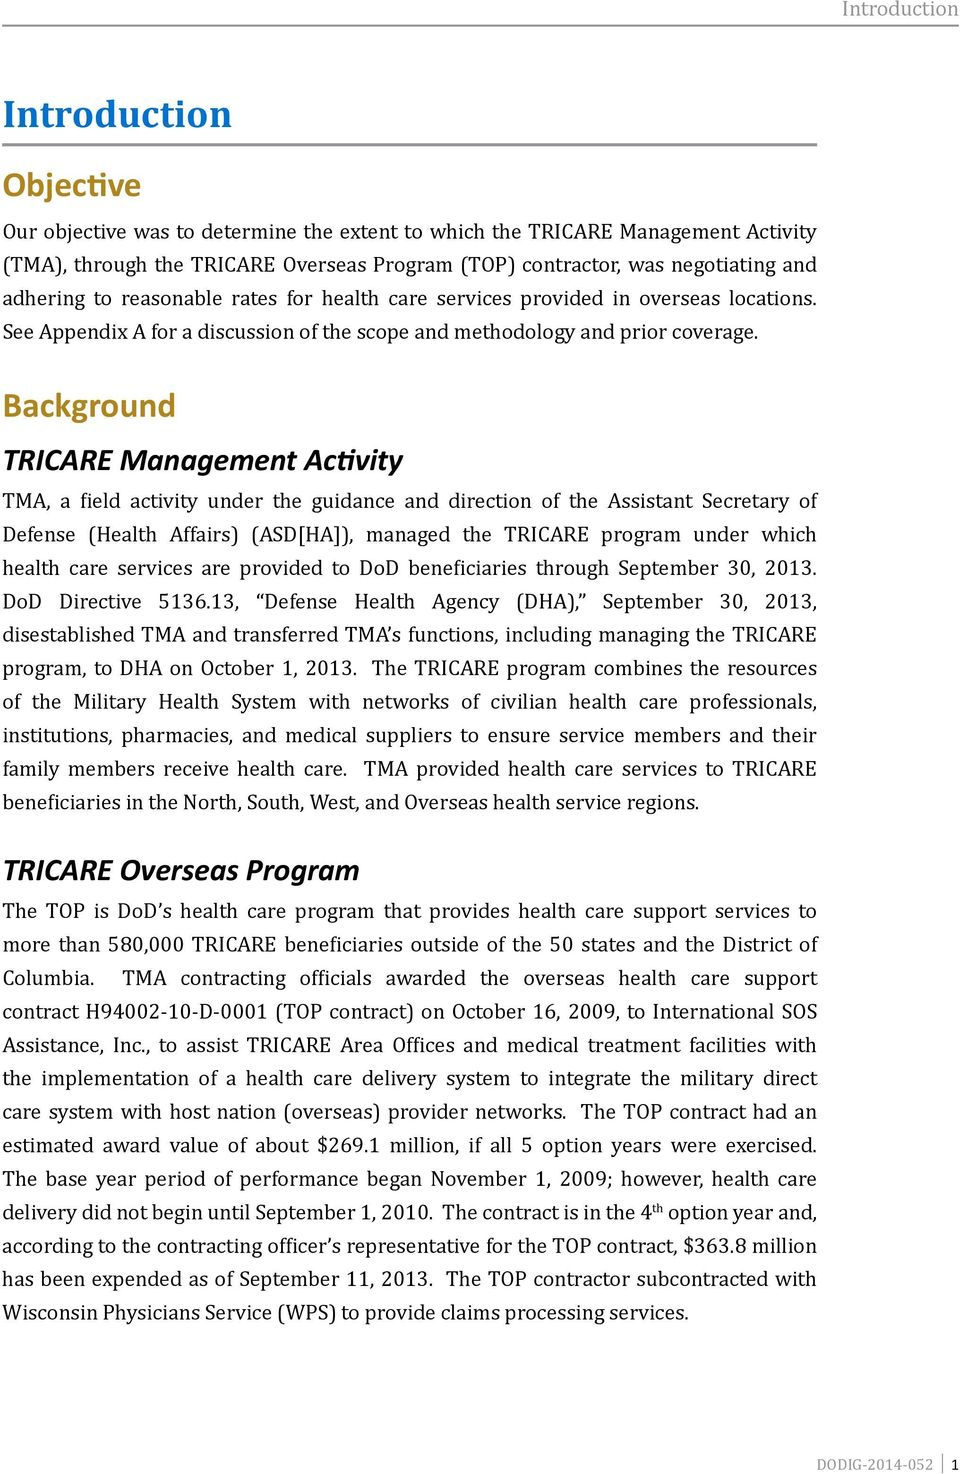 Background TRICARE Management Activity TMA, a field activity under the guidance and direction of the Assistant Secretary of Defense (Health Affairs) (ASD[HA]), managed the TRICARE program under which